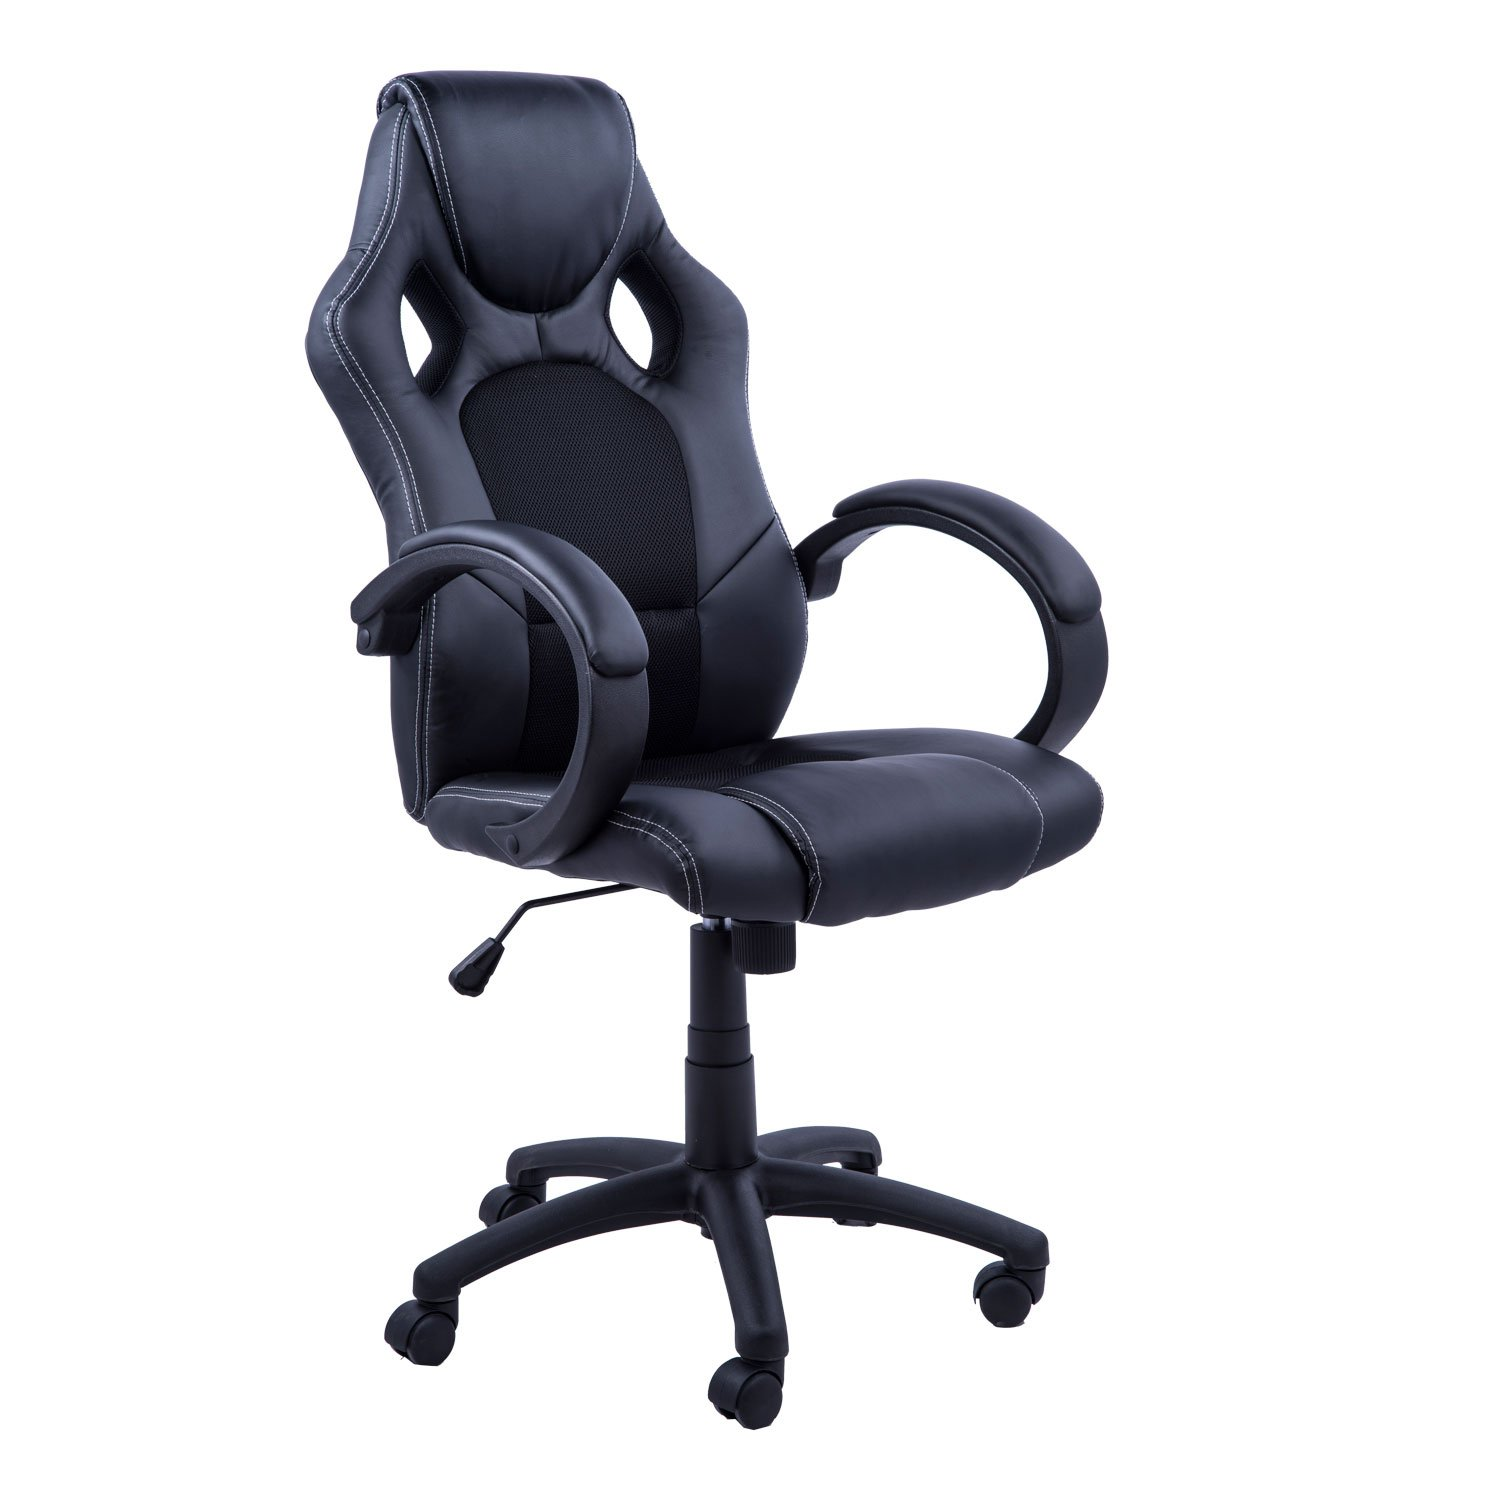 cloth without top ergonomic black wooden desk comfy office insight wheels best chairs chair tremendous